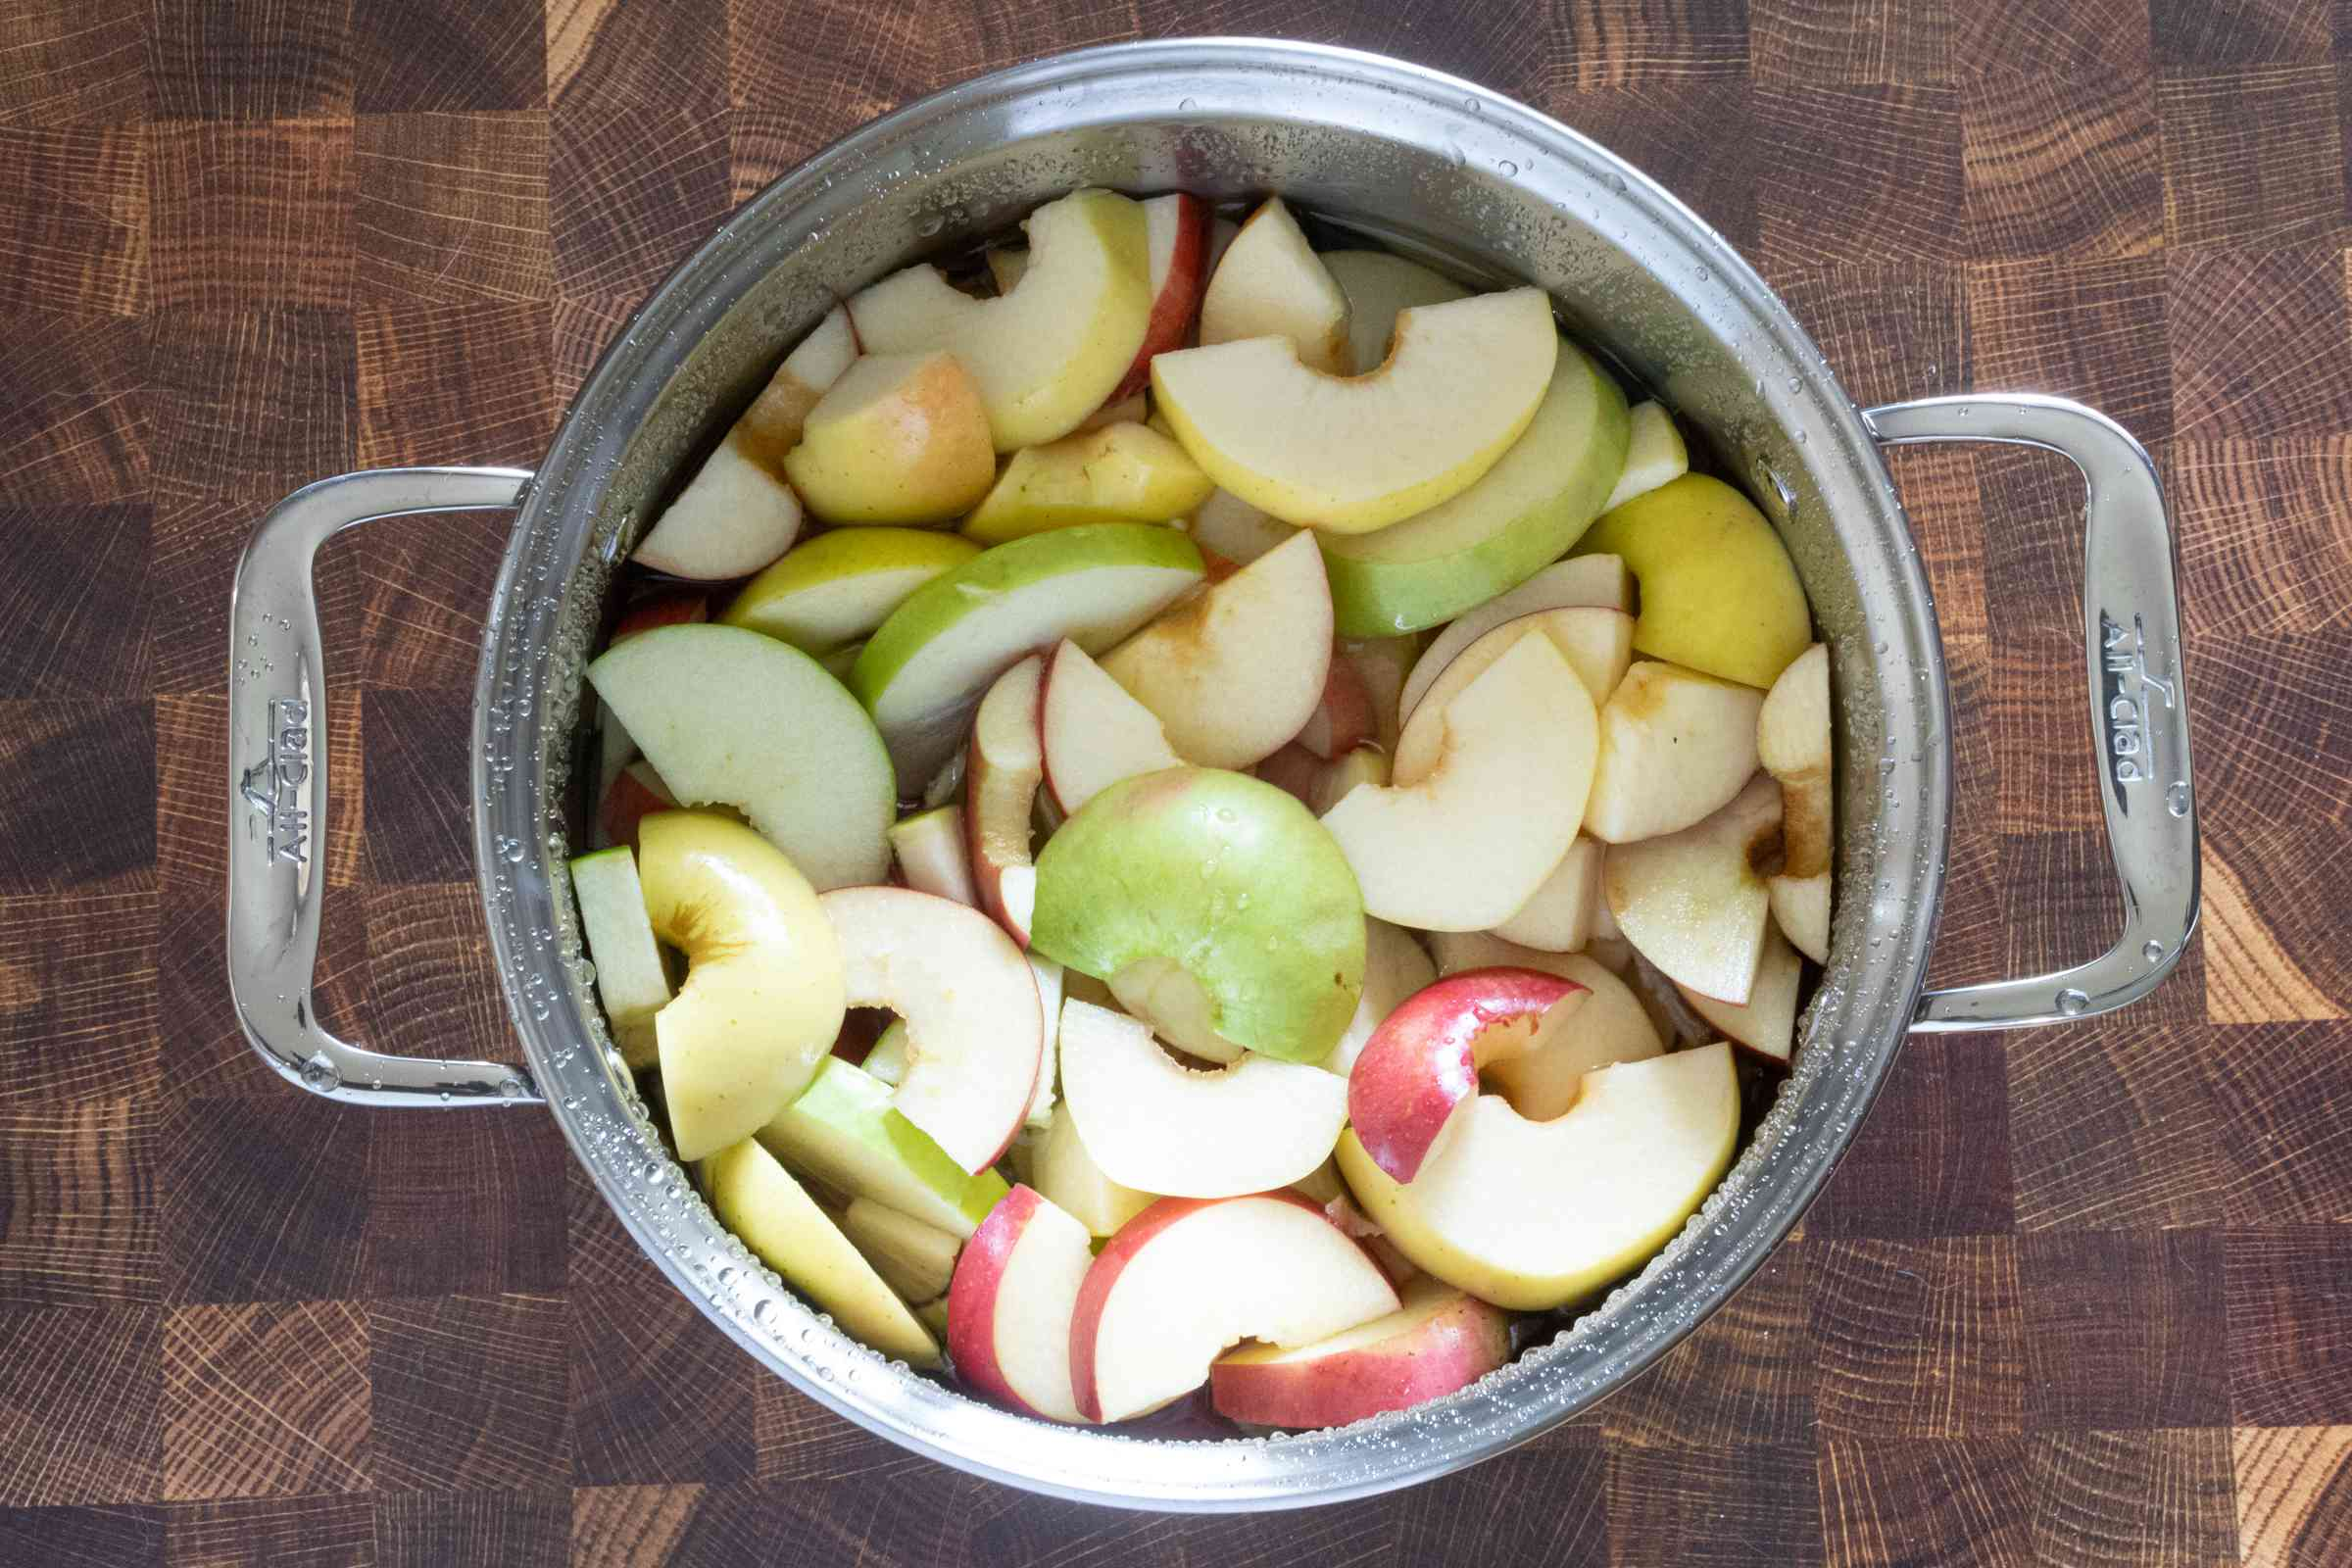 cover the apples with water (in an 8-qt stockpot)